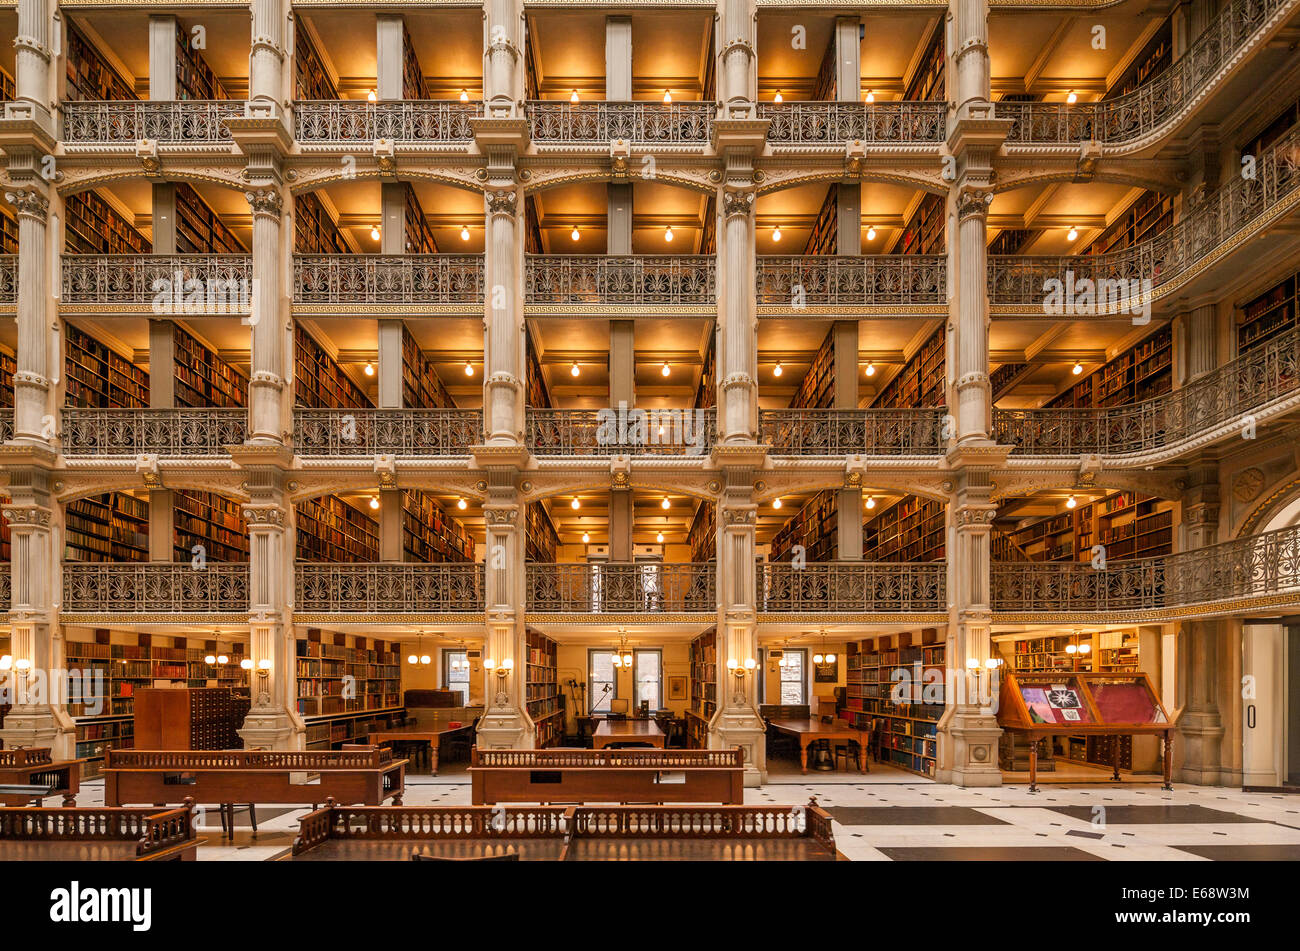 https://c7.alamy.com/comp/E68W3M/baltimore-george-peabody-library-one-of-the-most-beautiful-famous-E68W3M.jpg